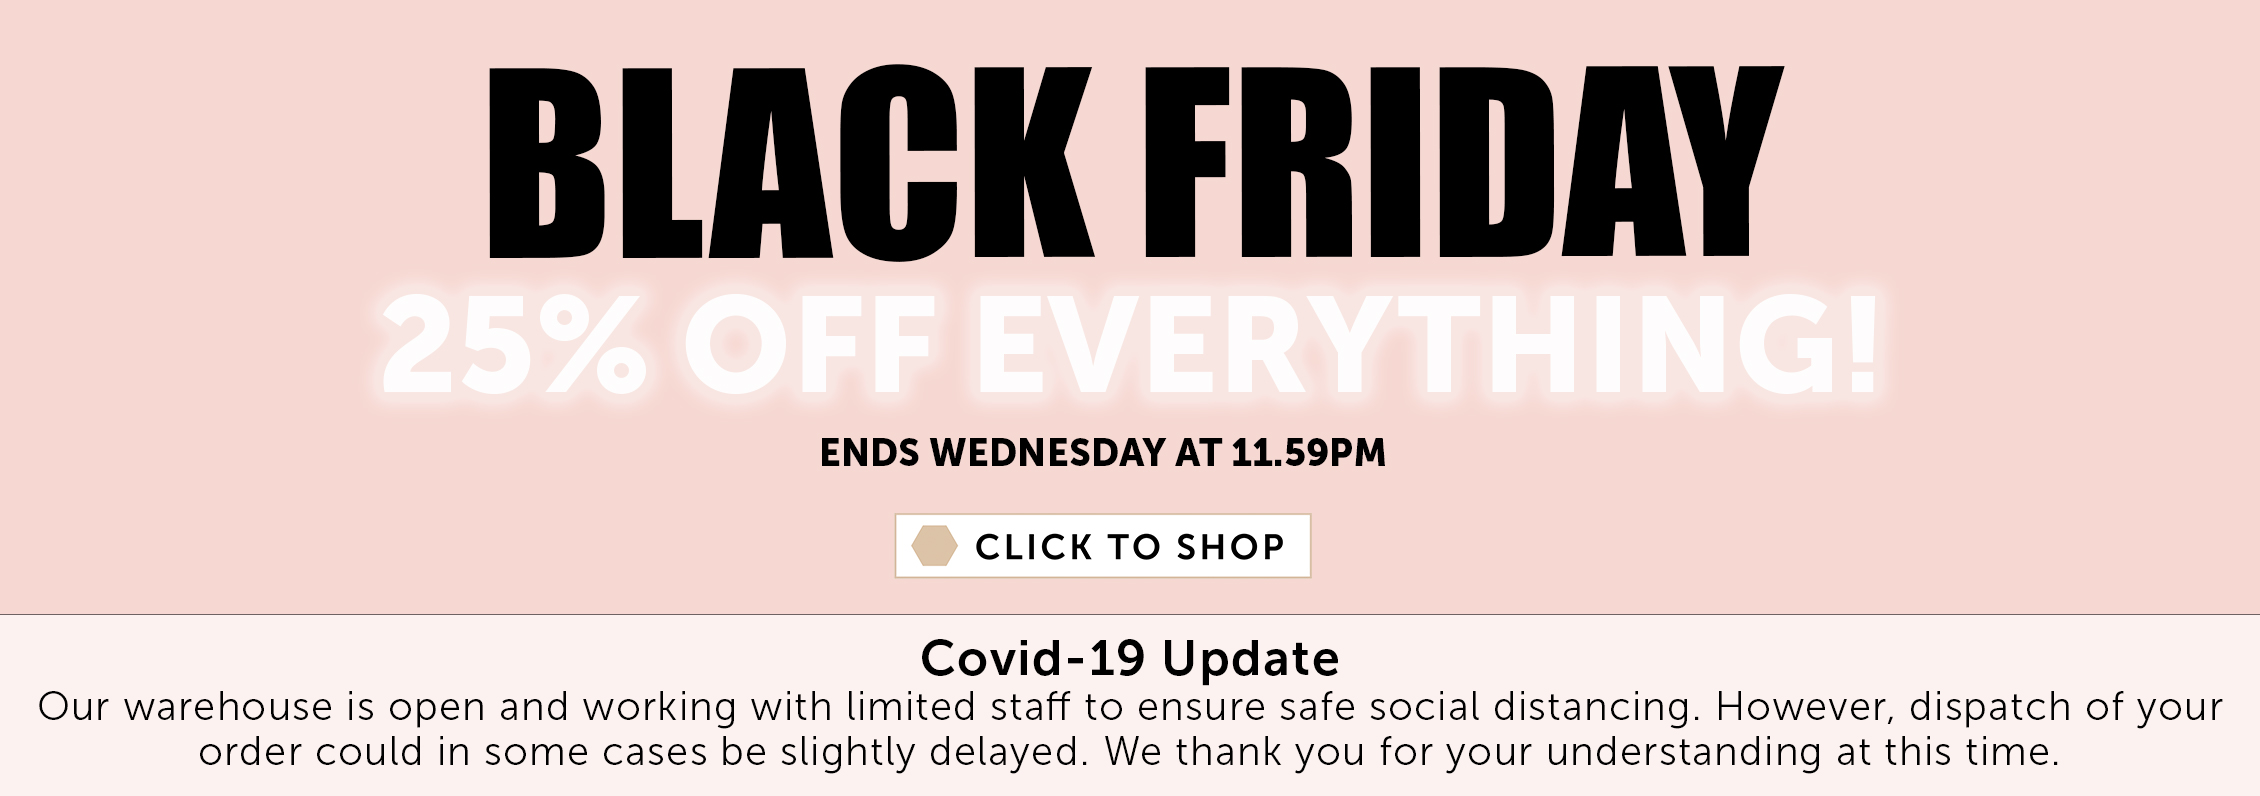 Black Friday - 25% off everything